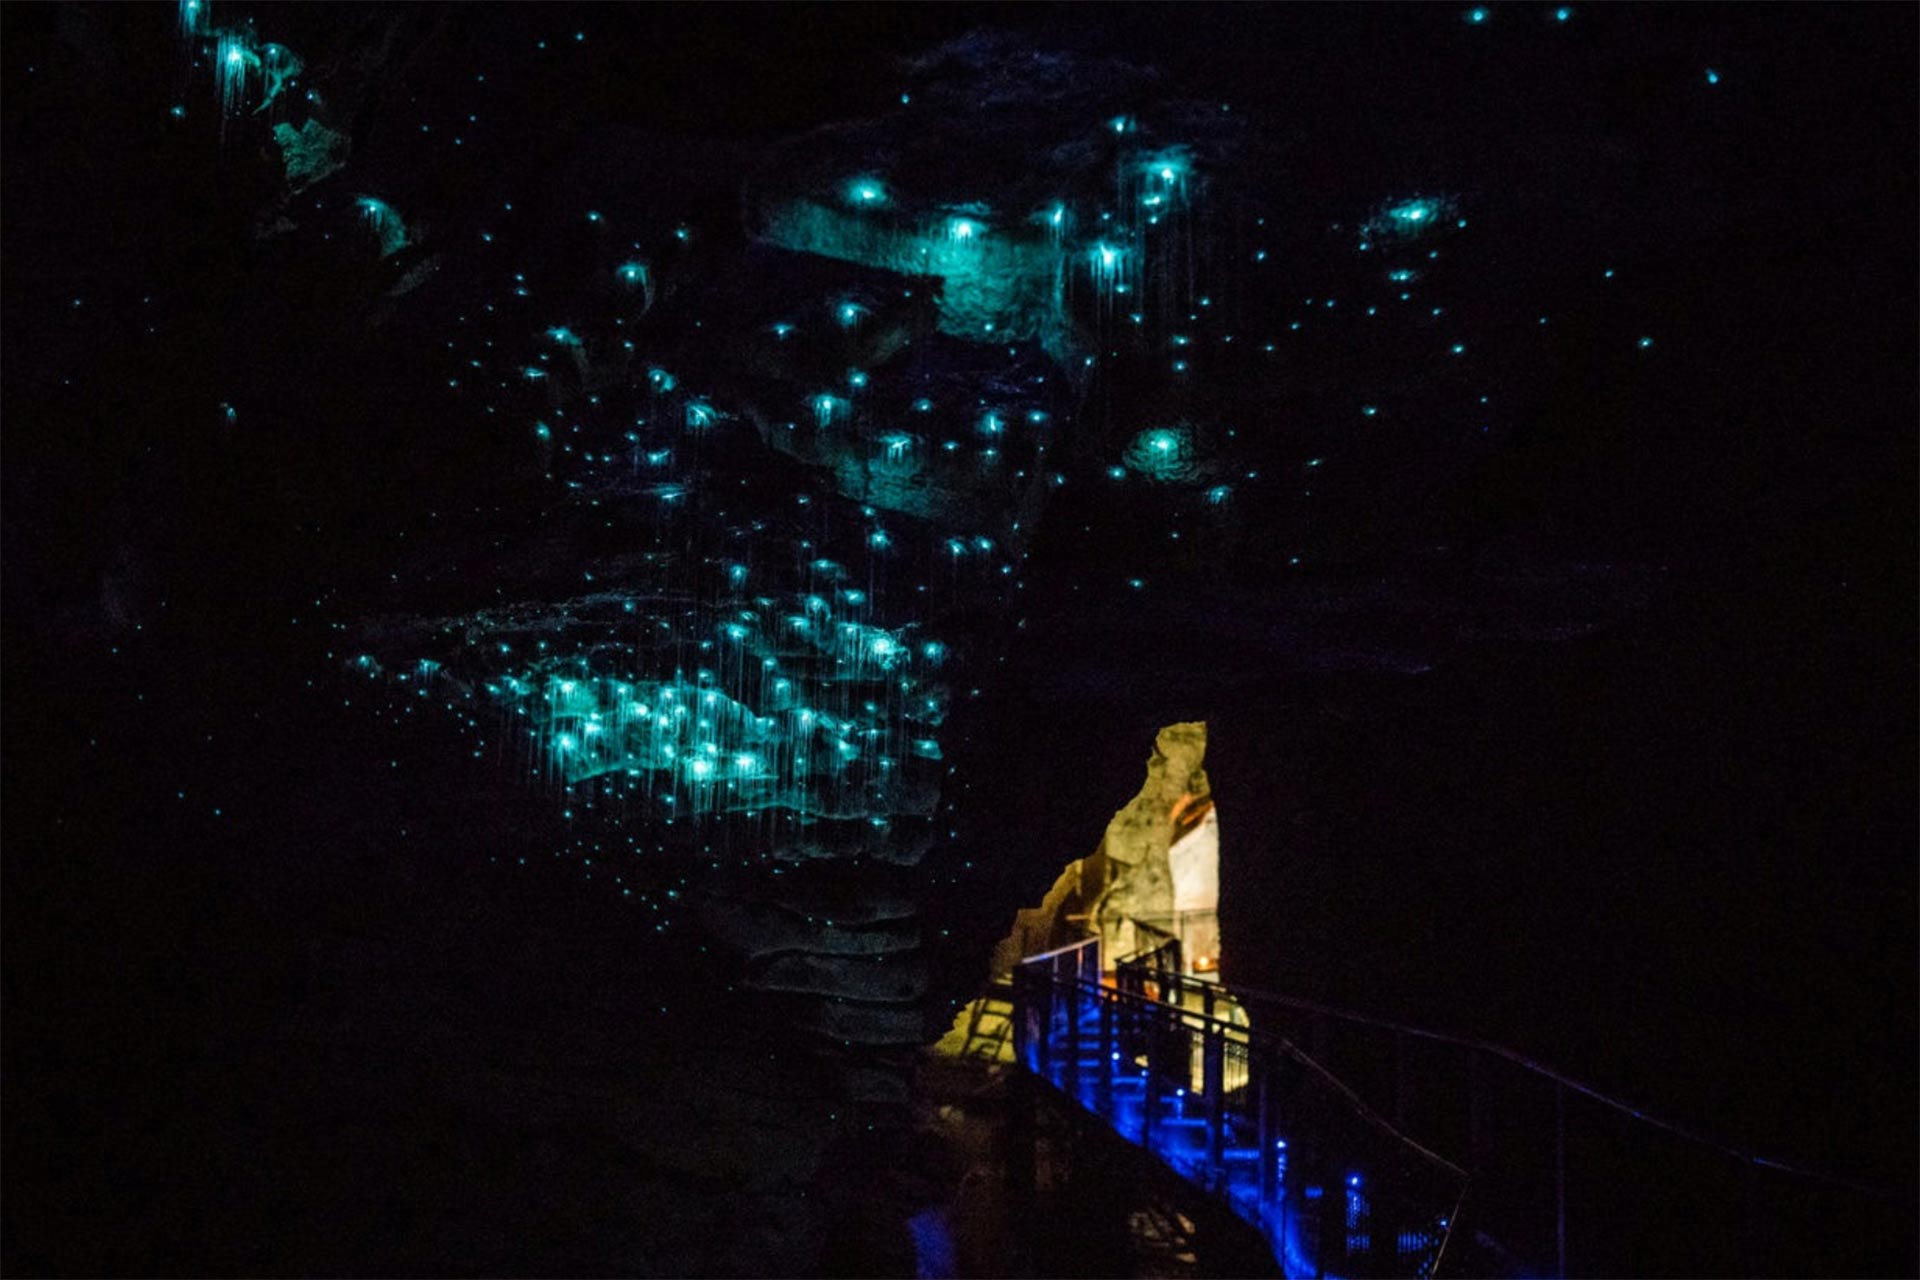 Waitomo Glowworms on New Zealand's North Island